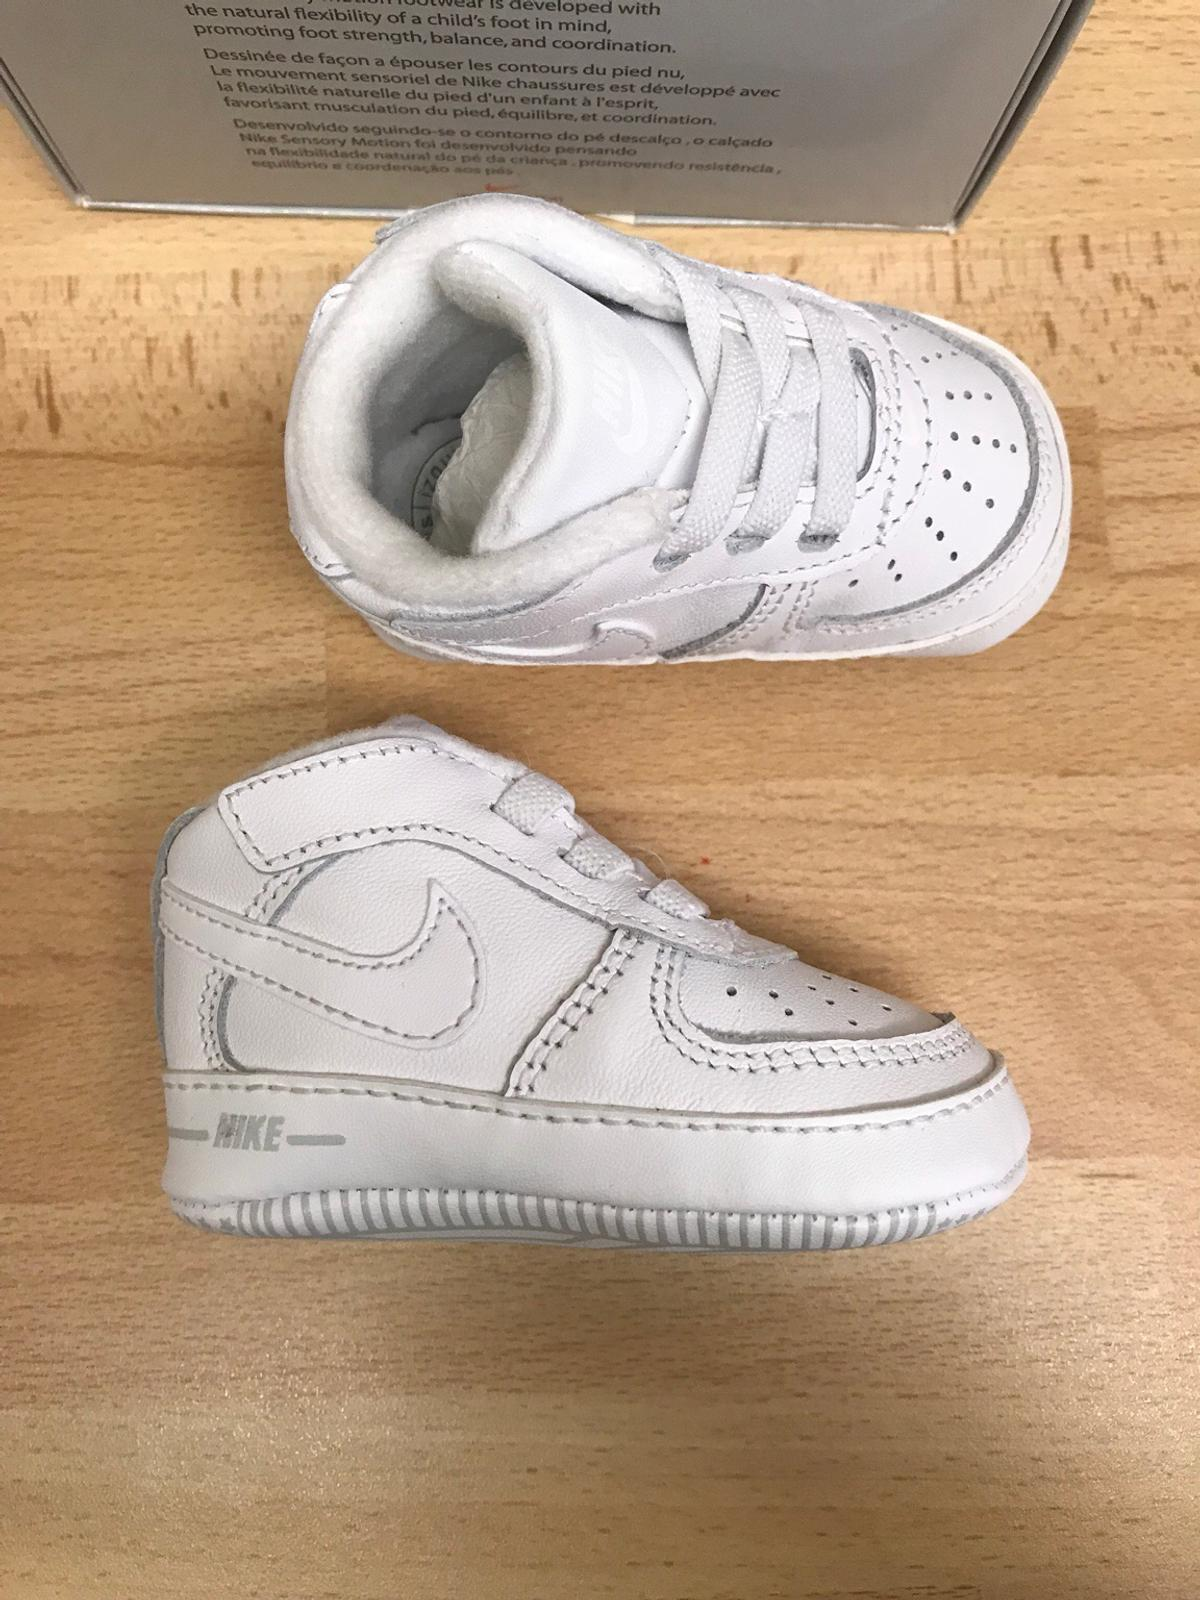 Baby Nike Air Force 1 baby shoes in SE17 London für 10,00